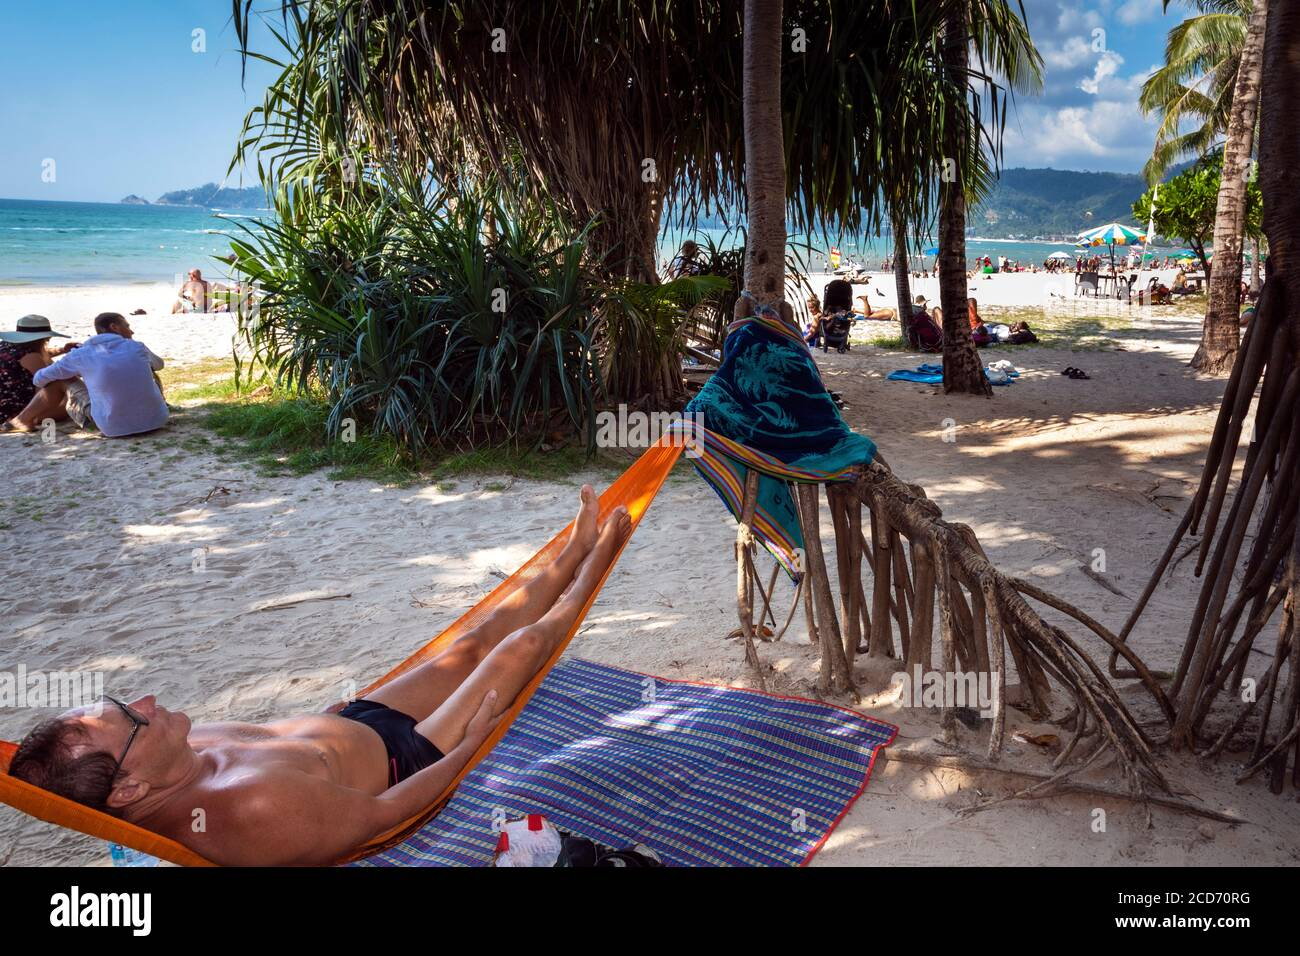 Tourist relaxing in a hammock on the beach at Patong, Phuket, Thailand Stock Photo